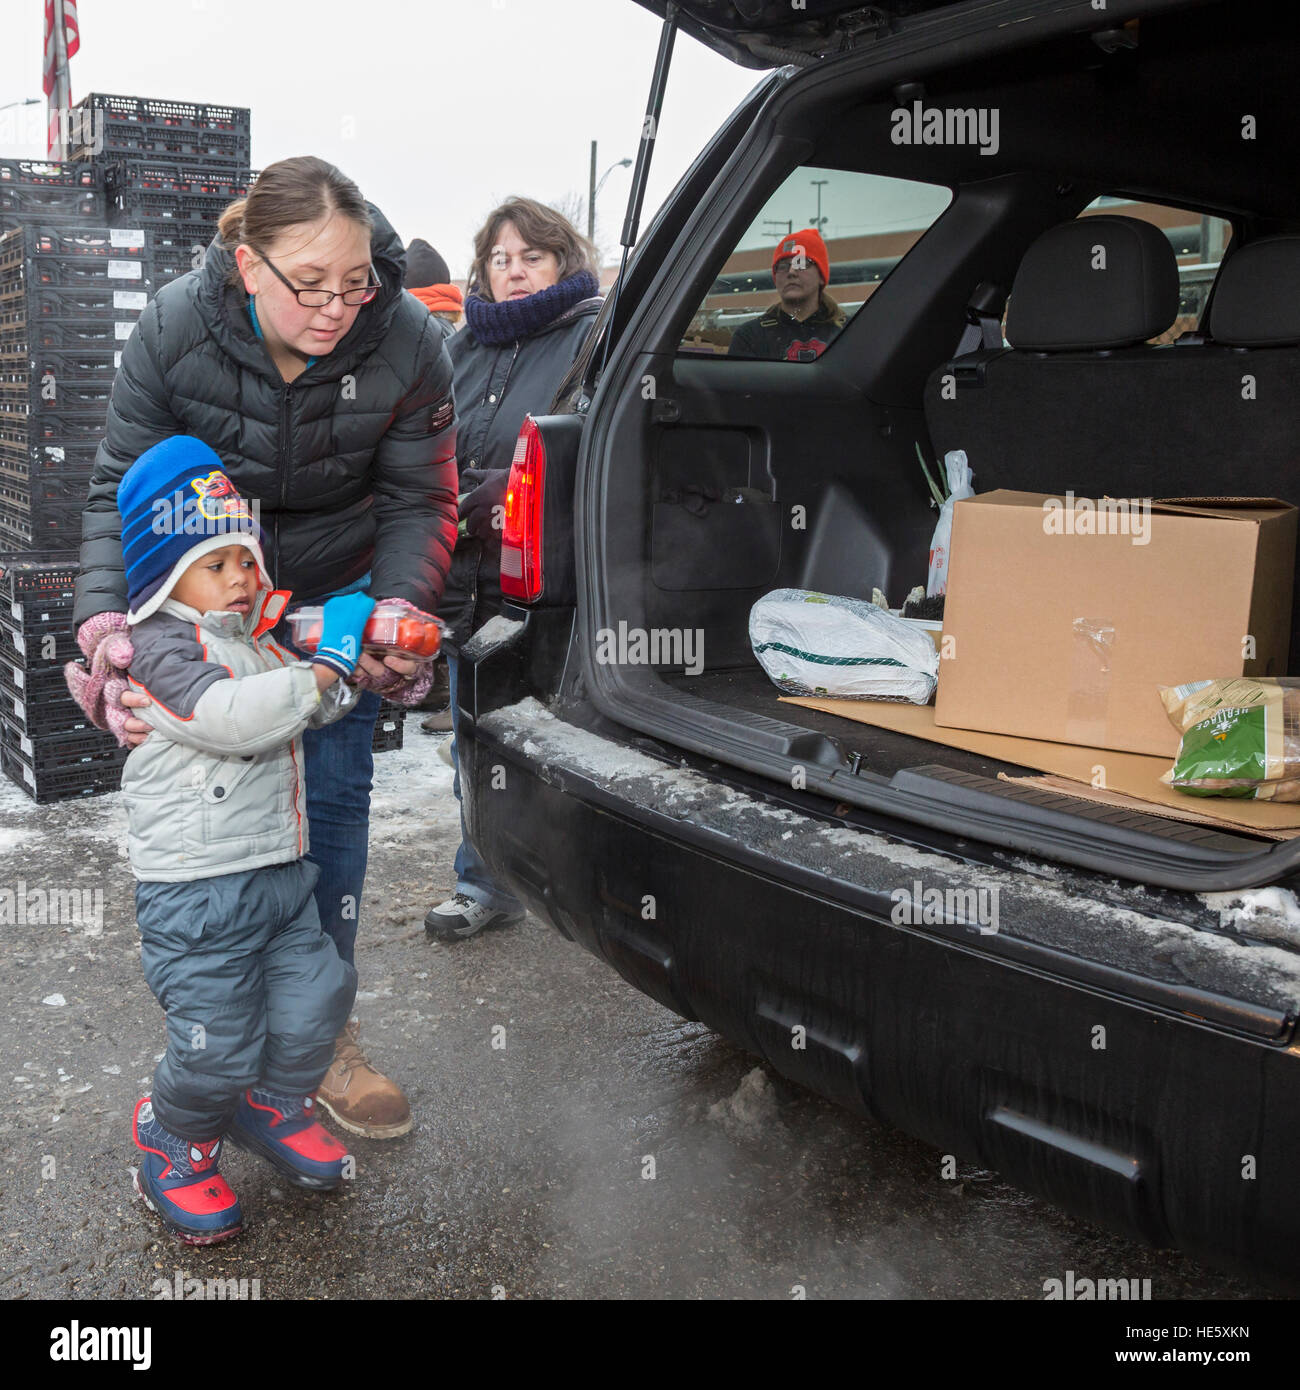 Detroit, Michigan USA - 17 December 2016 - Members of the Teamsters and AFL-CIO unions distribute holiday food boxes - Stock Image